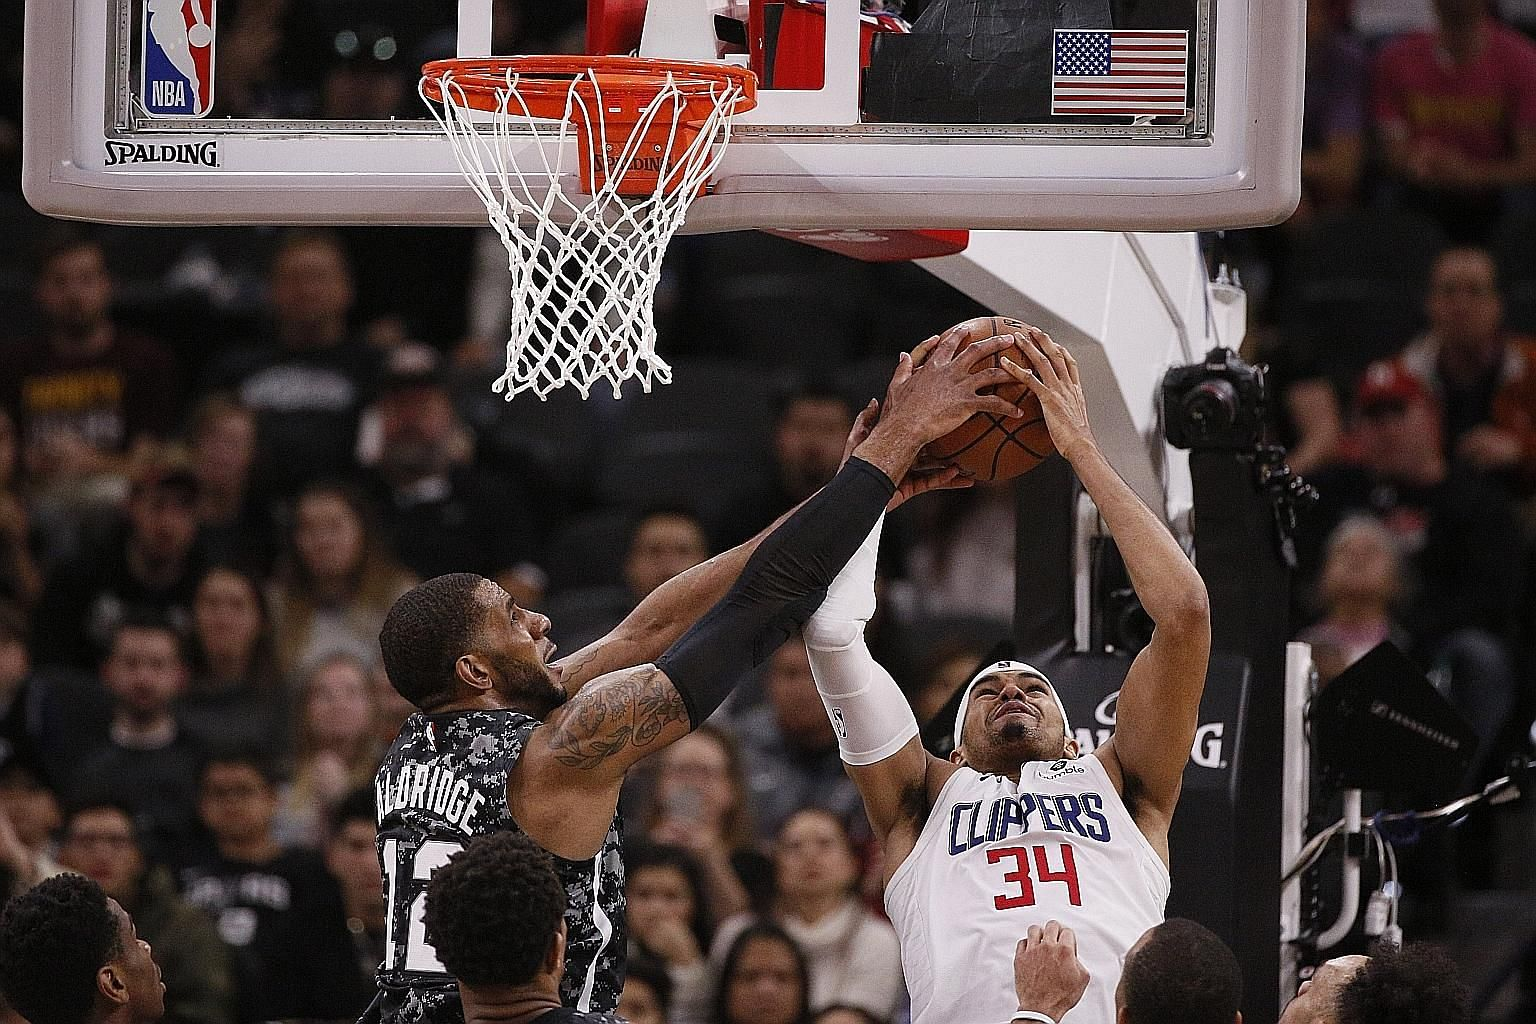 Los Angeles Clippers' Tobias Harris challenges San Antonio Spurs' LaMarcus Aldridge for a rebound. The Spurs centre led all scorers with 30 points but it was not enough to prevent the Clippers beating them 103-95 at the AT&T Centre in San Antonio.